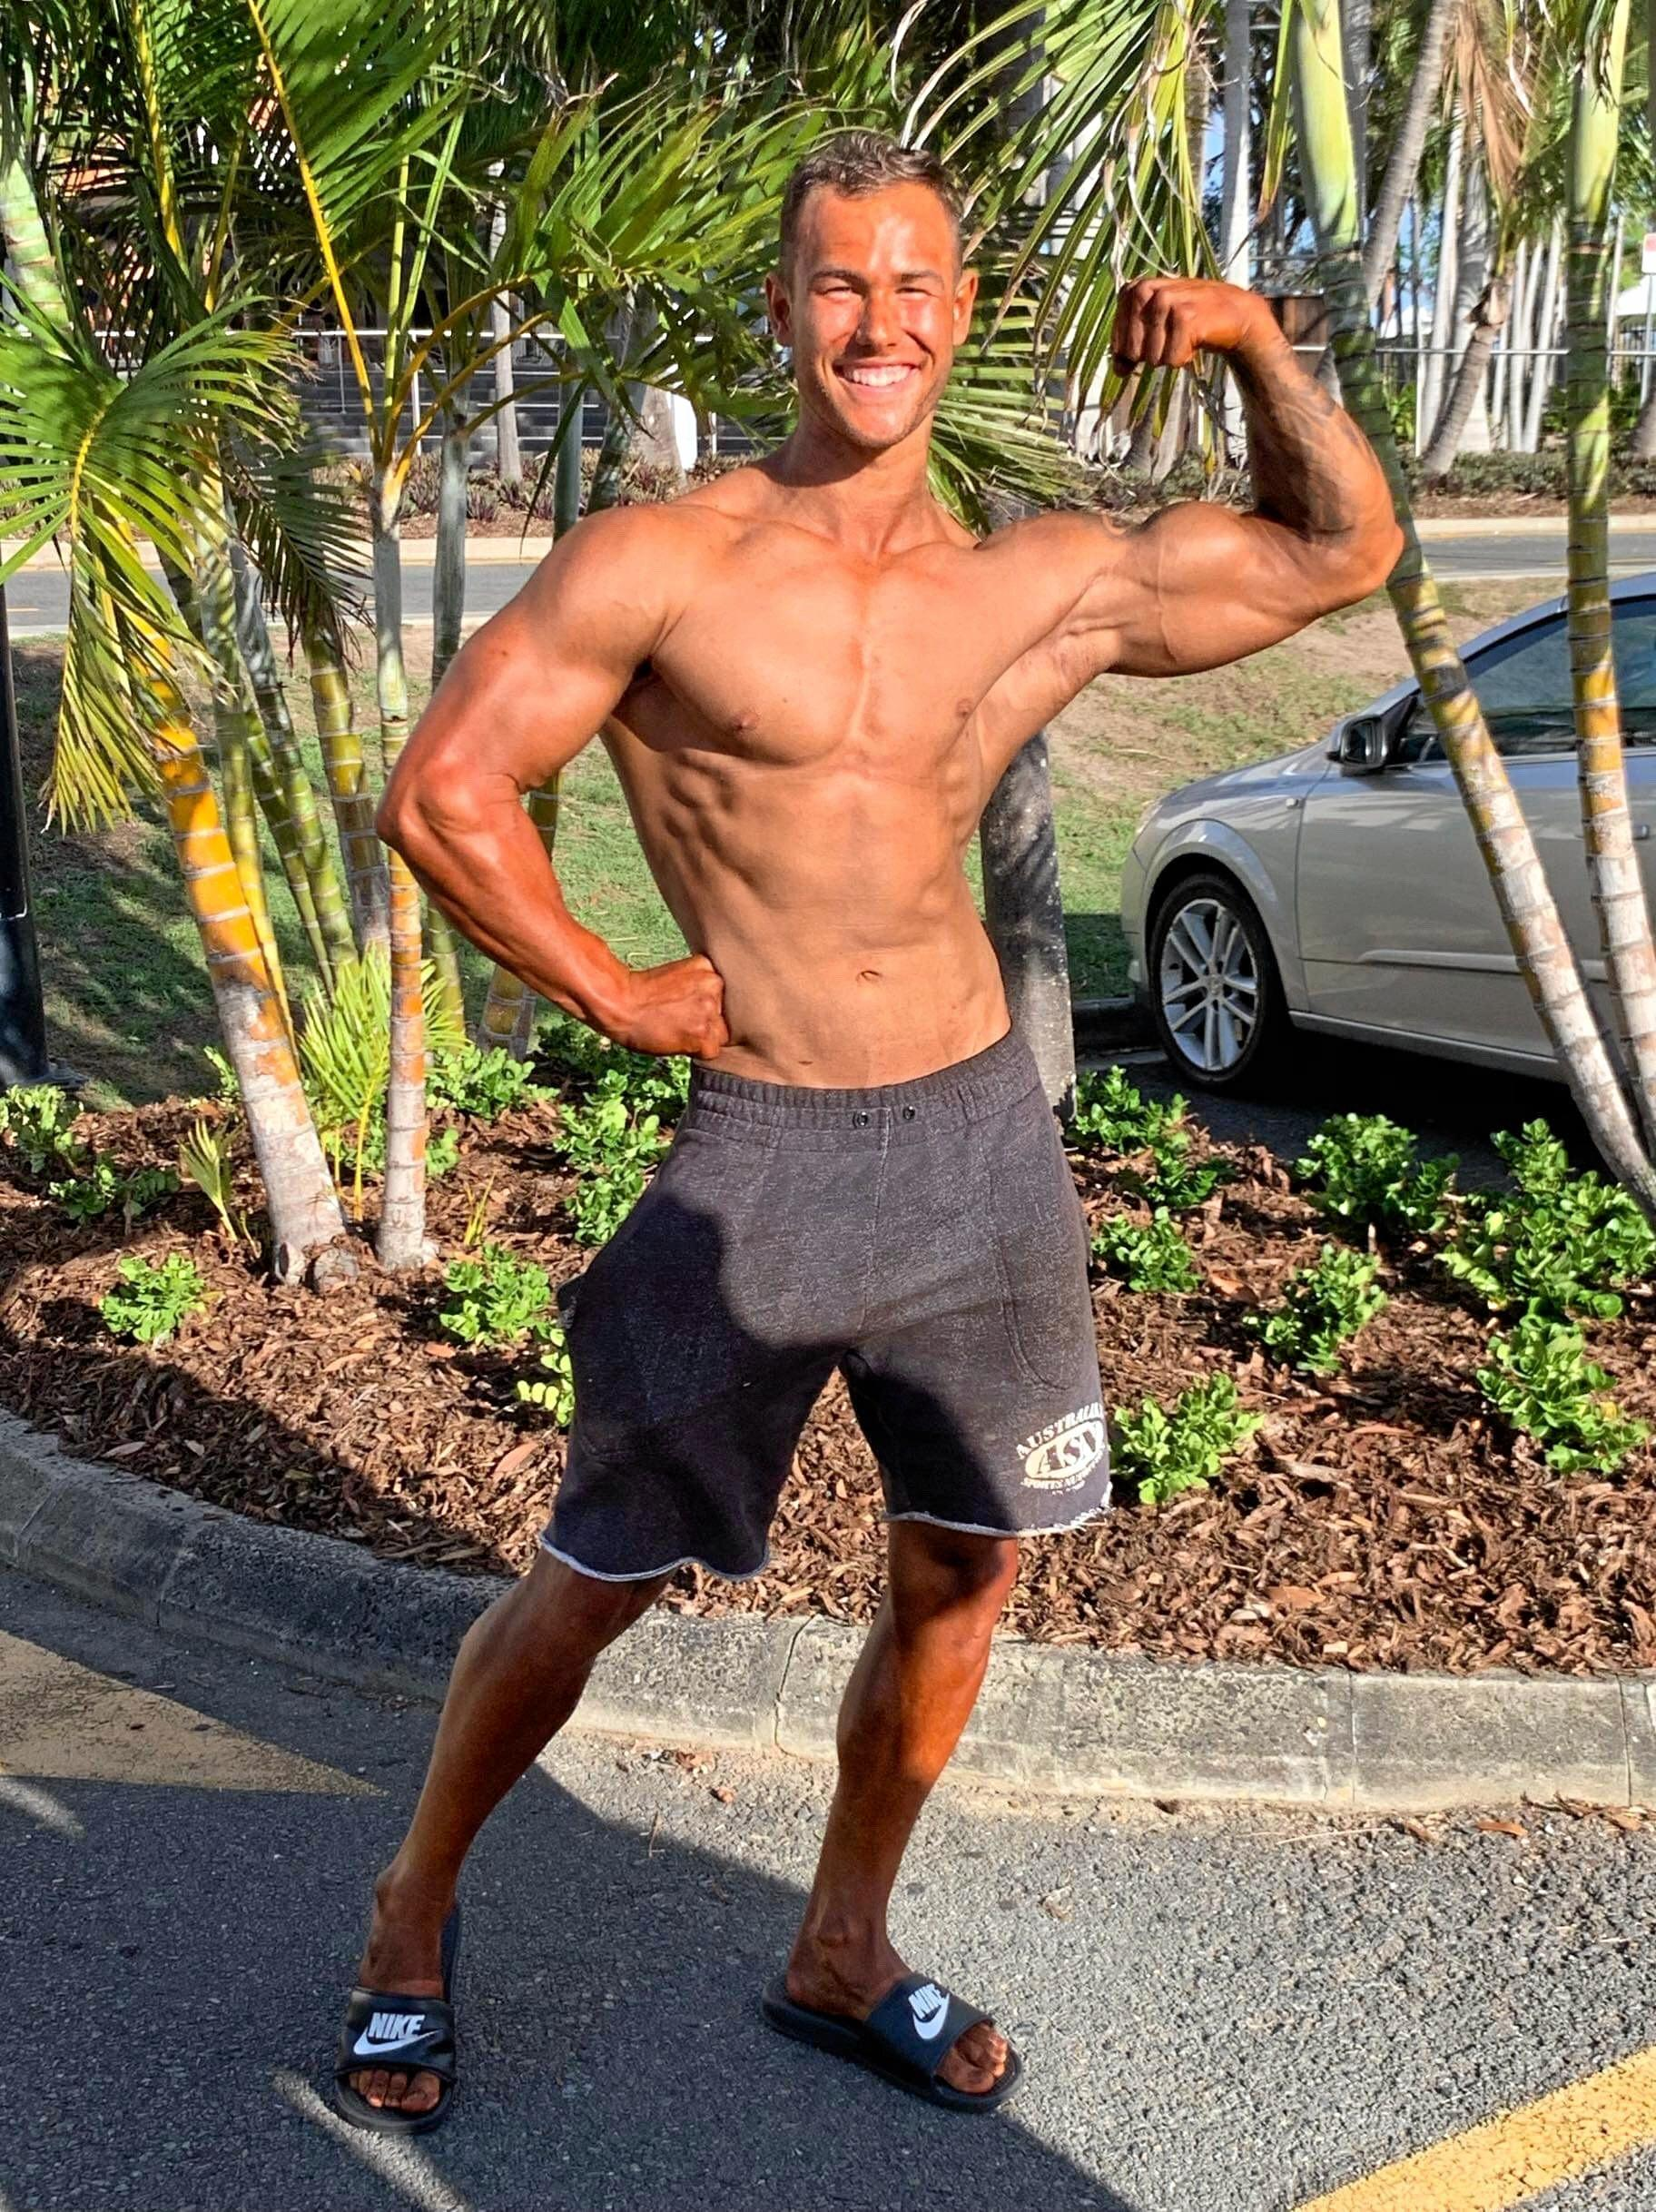 Warwick body builder Ethan Sturgeon has decided to stay natural and compete in upcoming competitions that support drug testing.